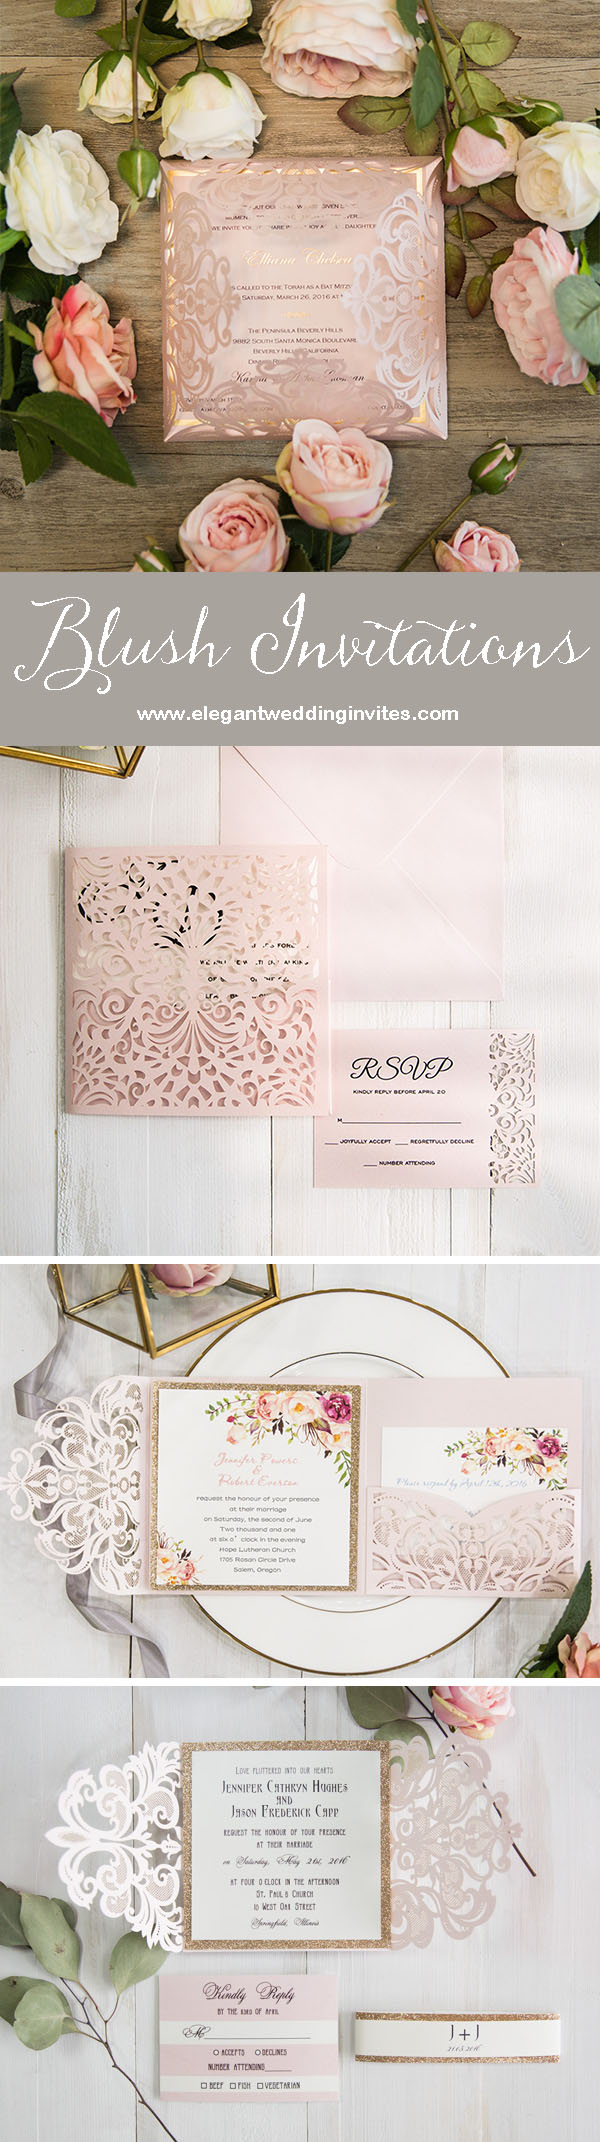 stunning blush wedding invitations with metallic accents for blush weddings